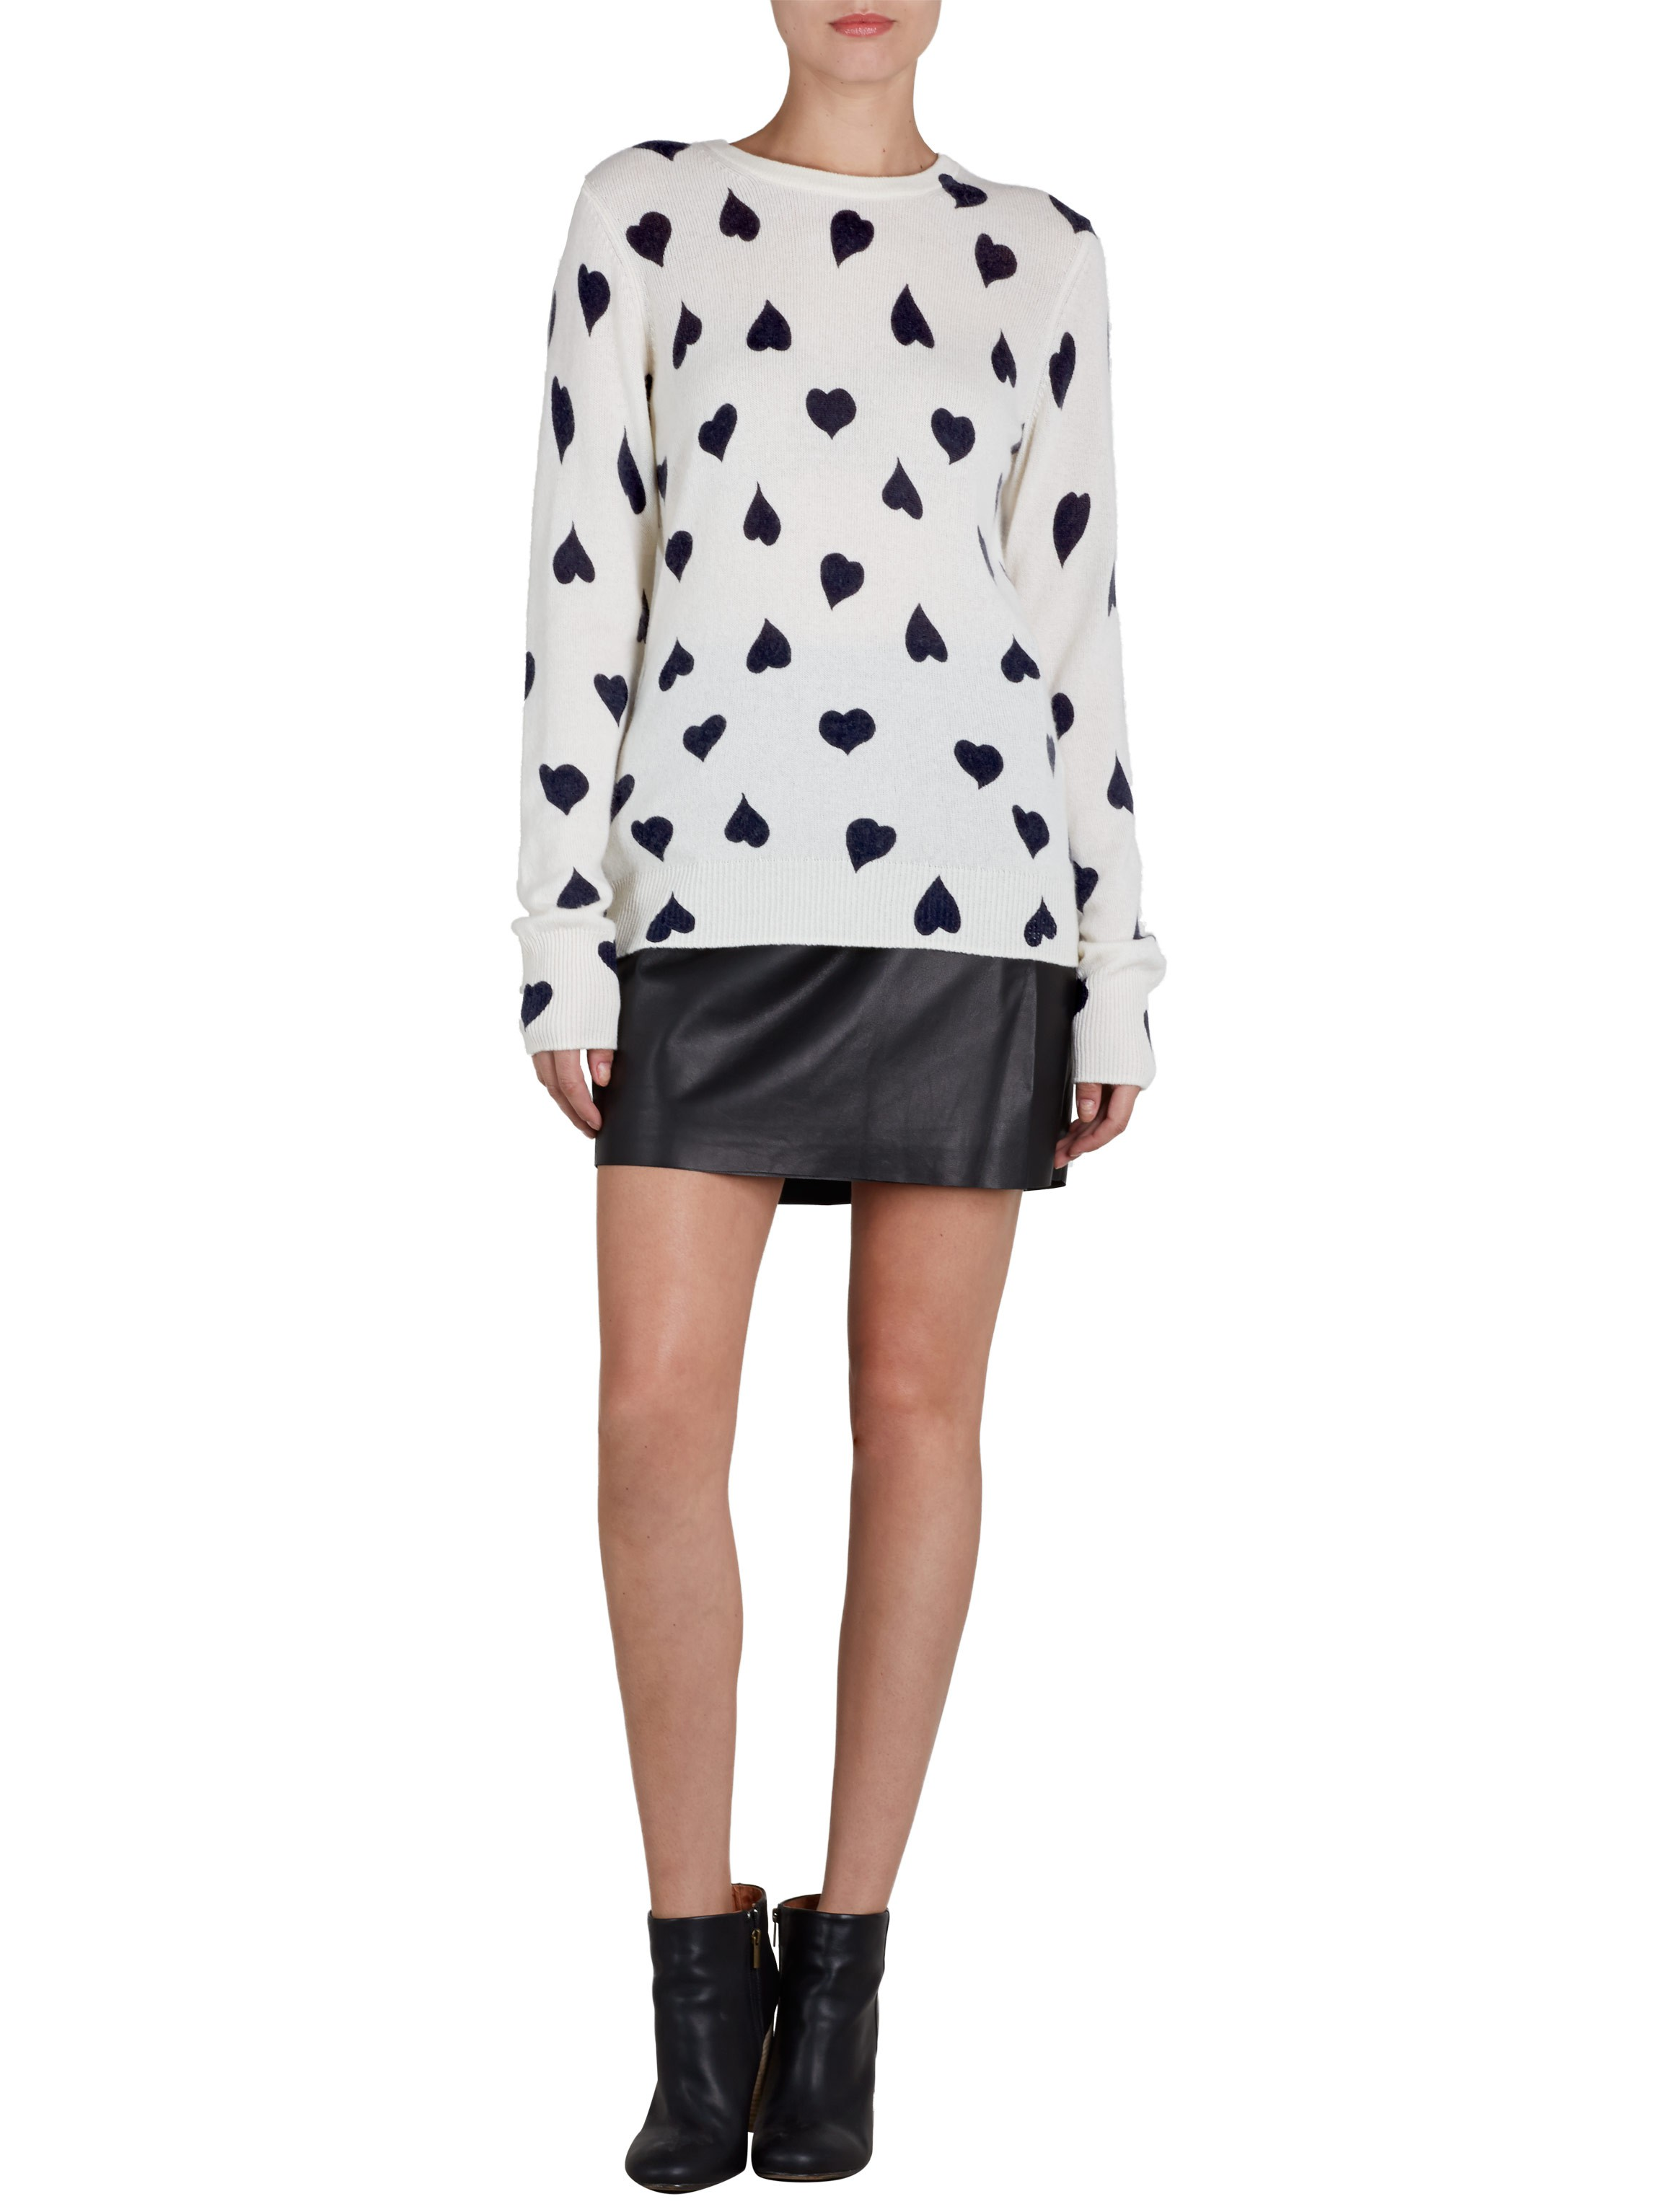 EQUIPMENT Shane Crew Neck Peacoat Ivory Hearts Print | Cashmere Sweater